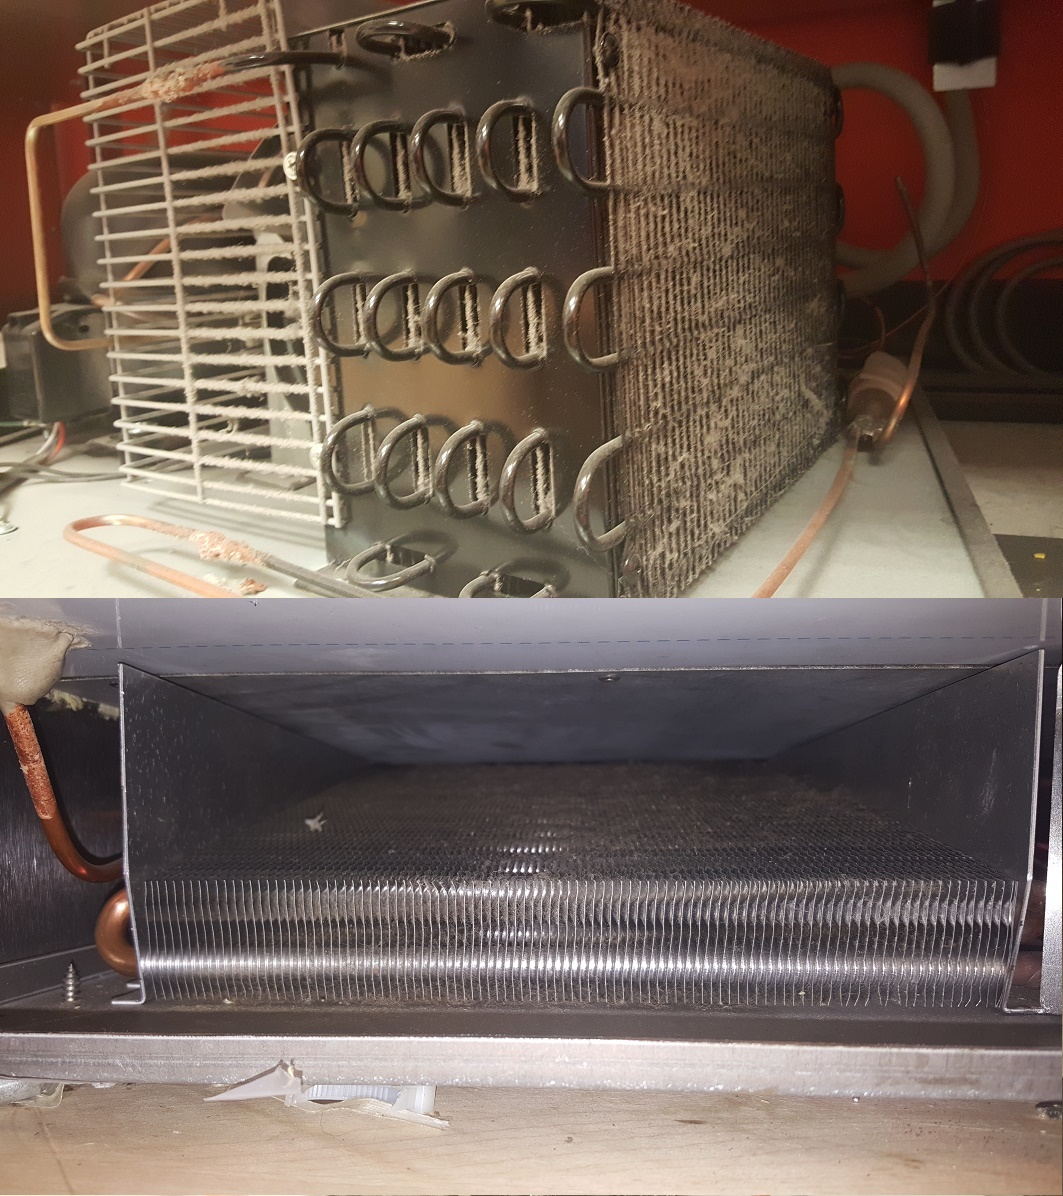 How To Clean Bathroom Wall Stains: How To Clean A Commercial Refrigerator Condenser Coil